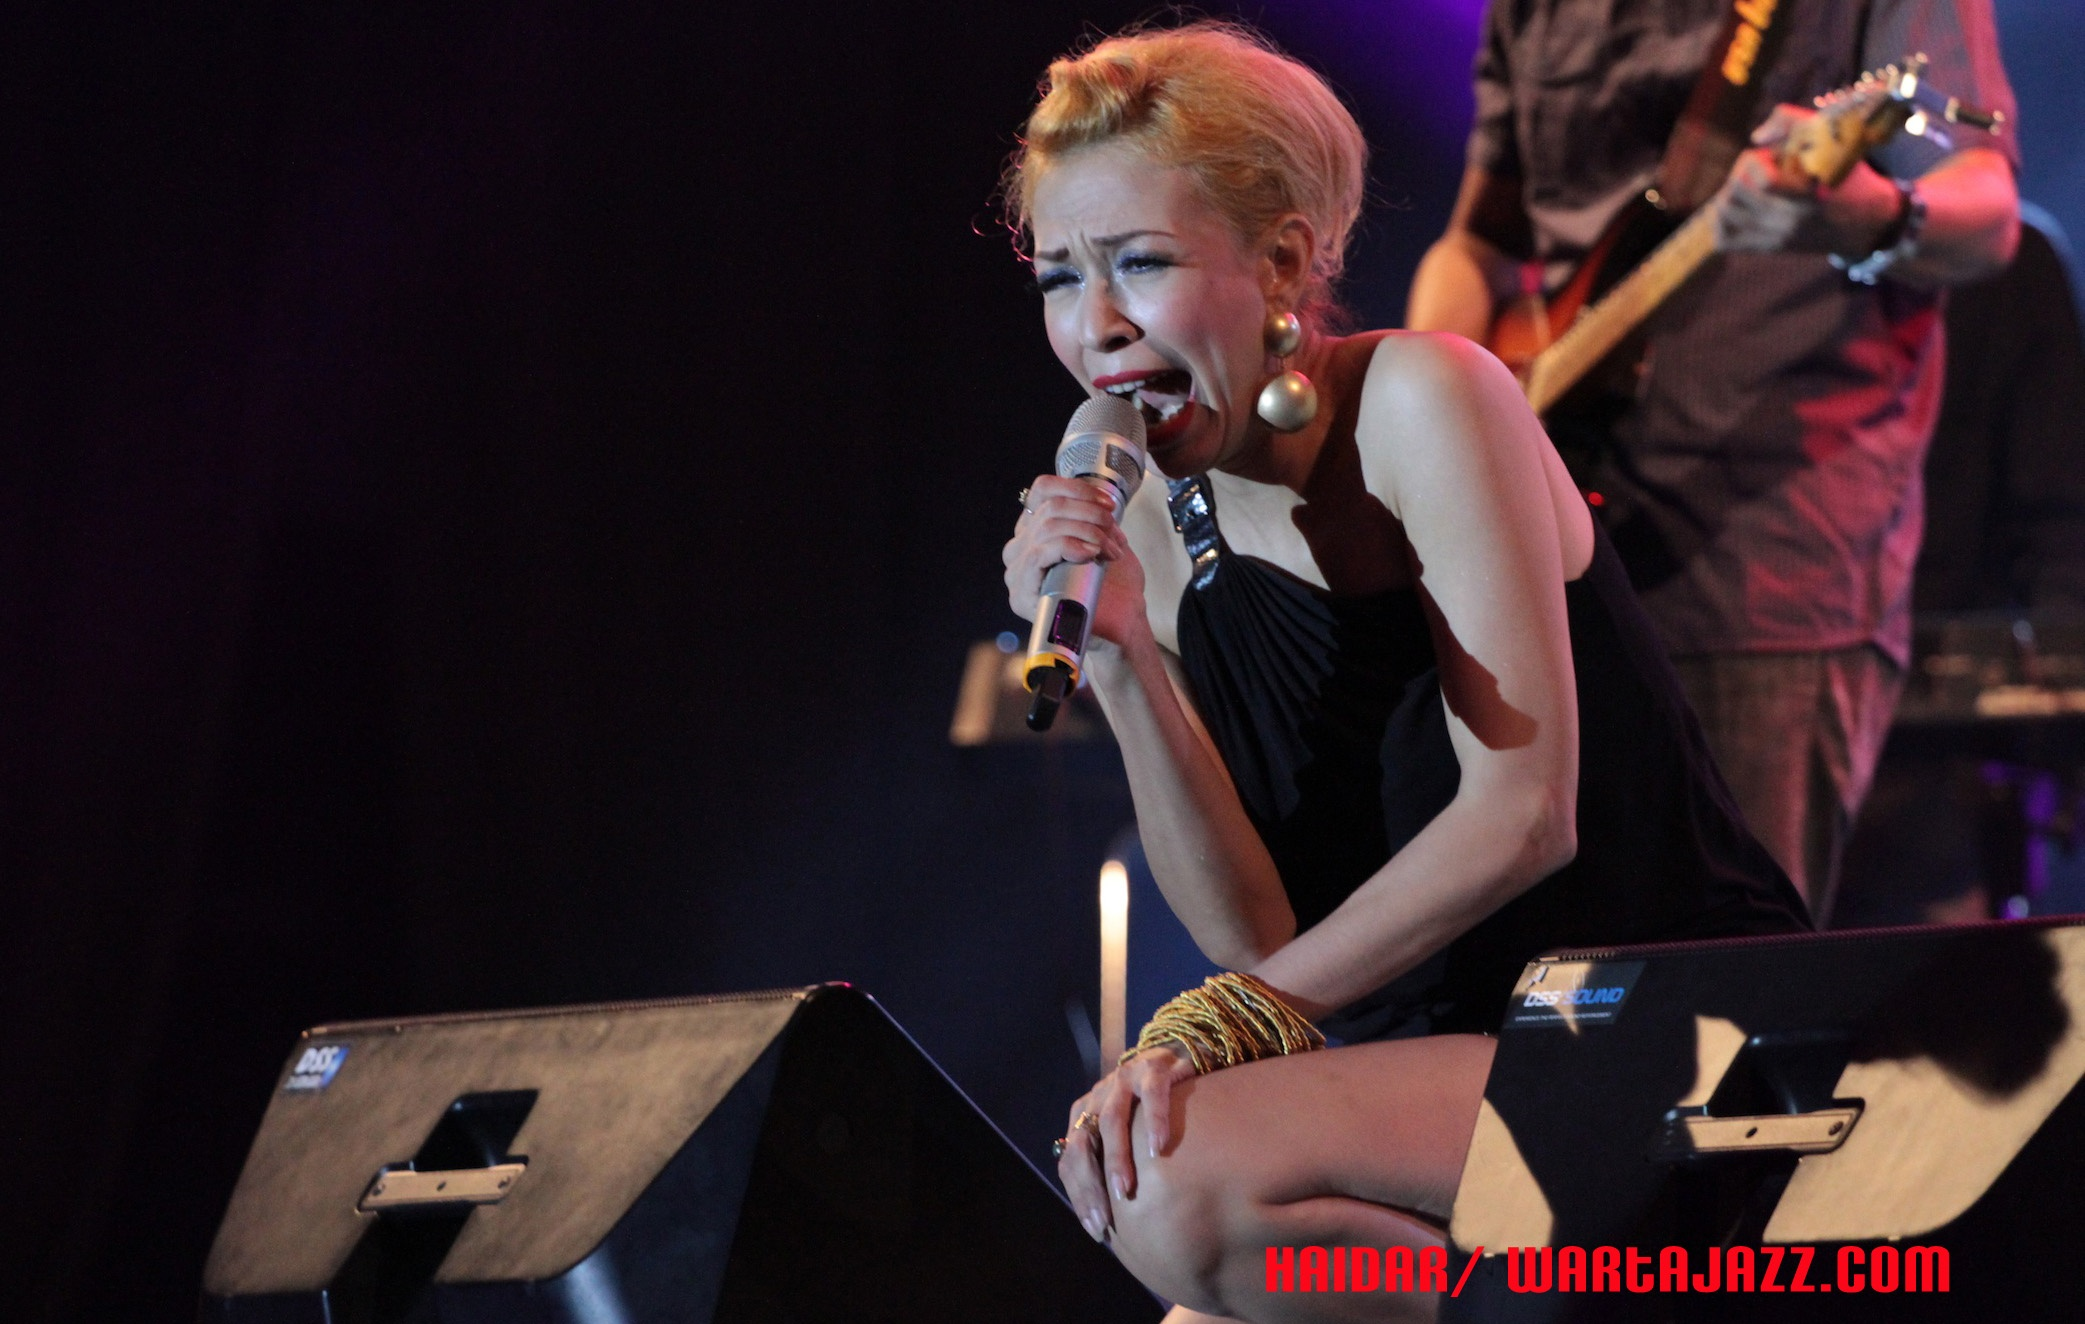 Photo of Reuni dan Nostalgia di hari kedua Bank Jatim jazz traffic festival 2014